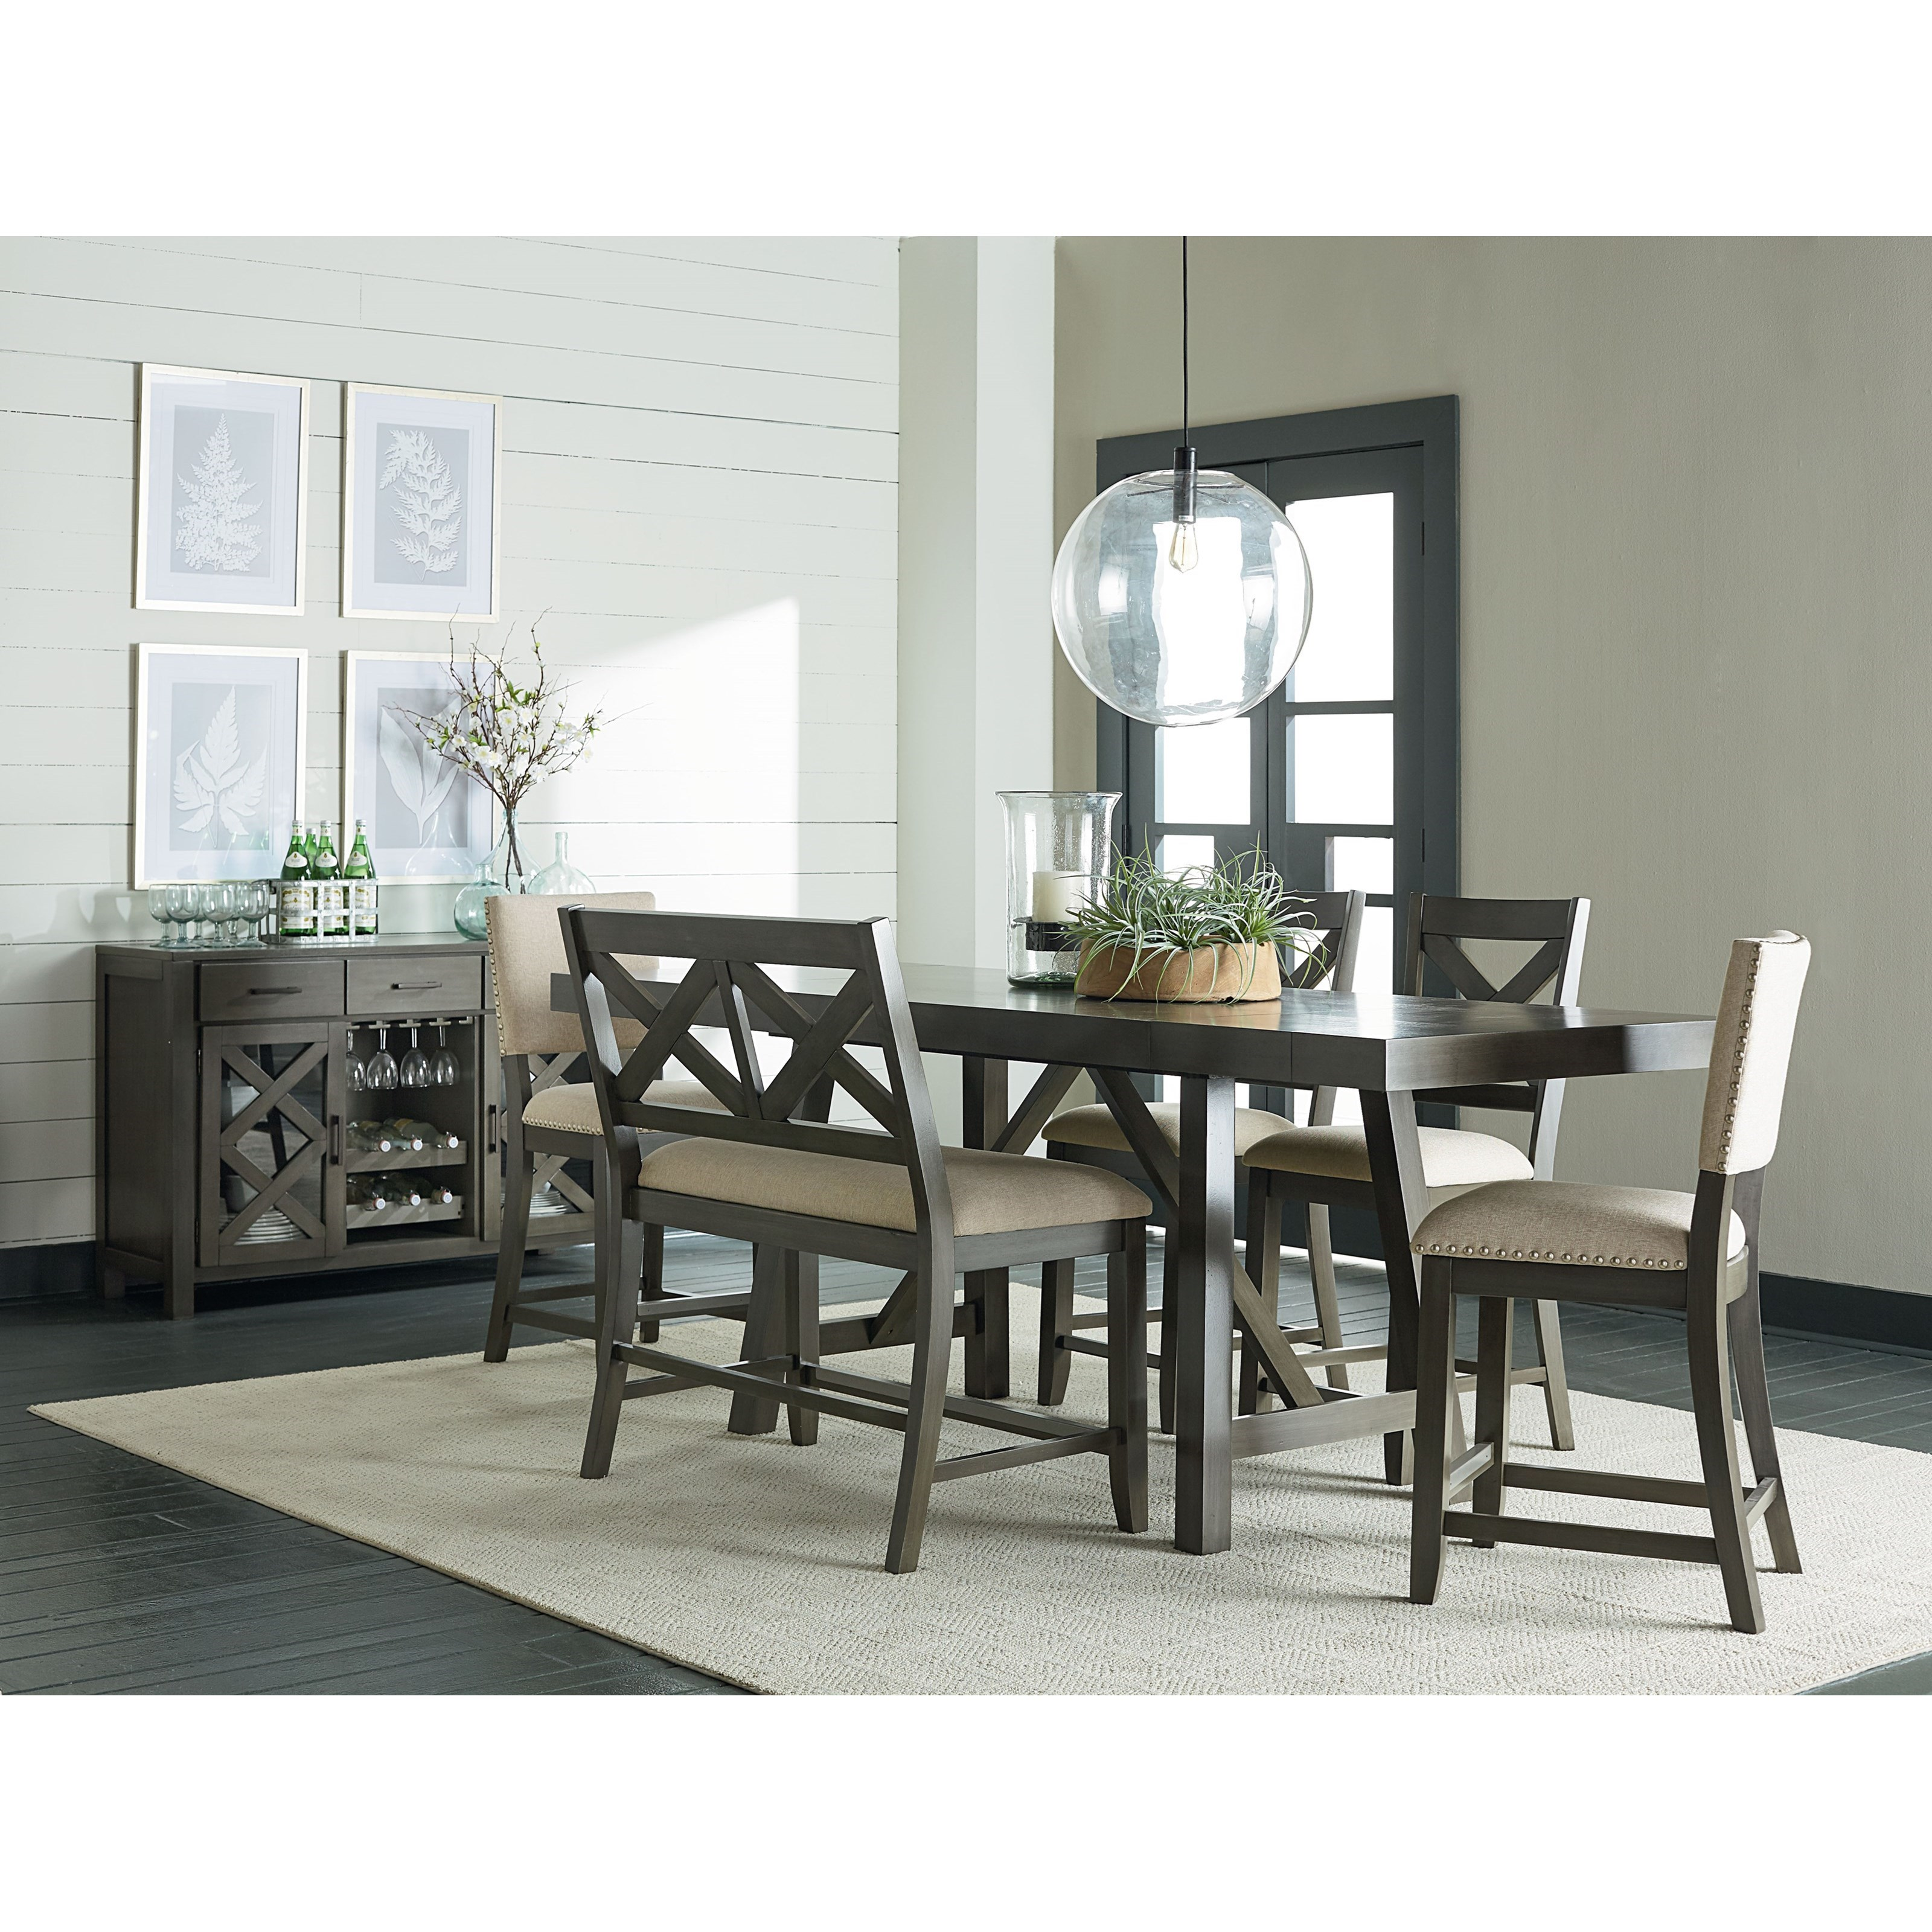 Casual dining room group by standard furniture wolf and for Casual dining room furniture